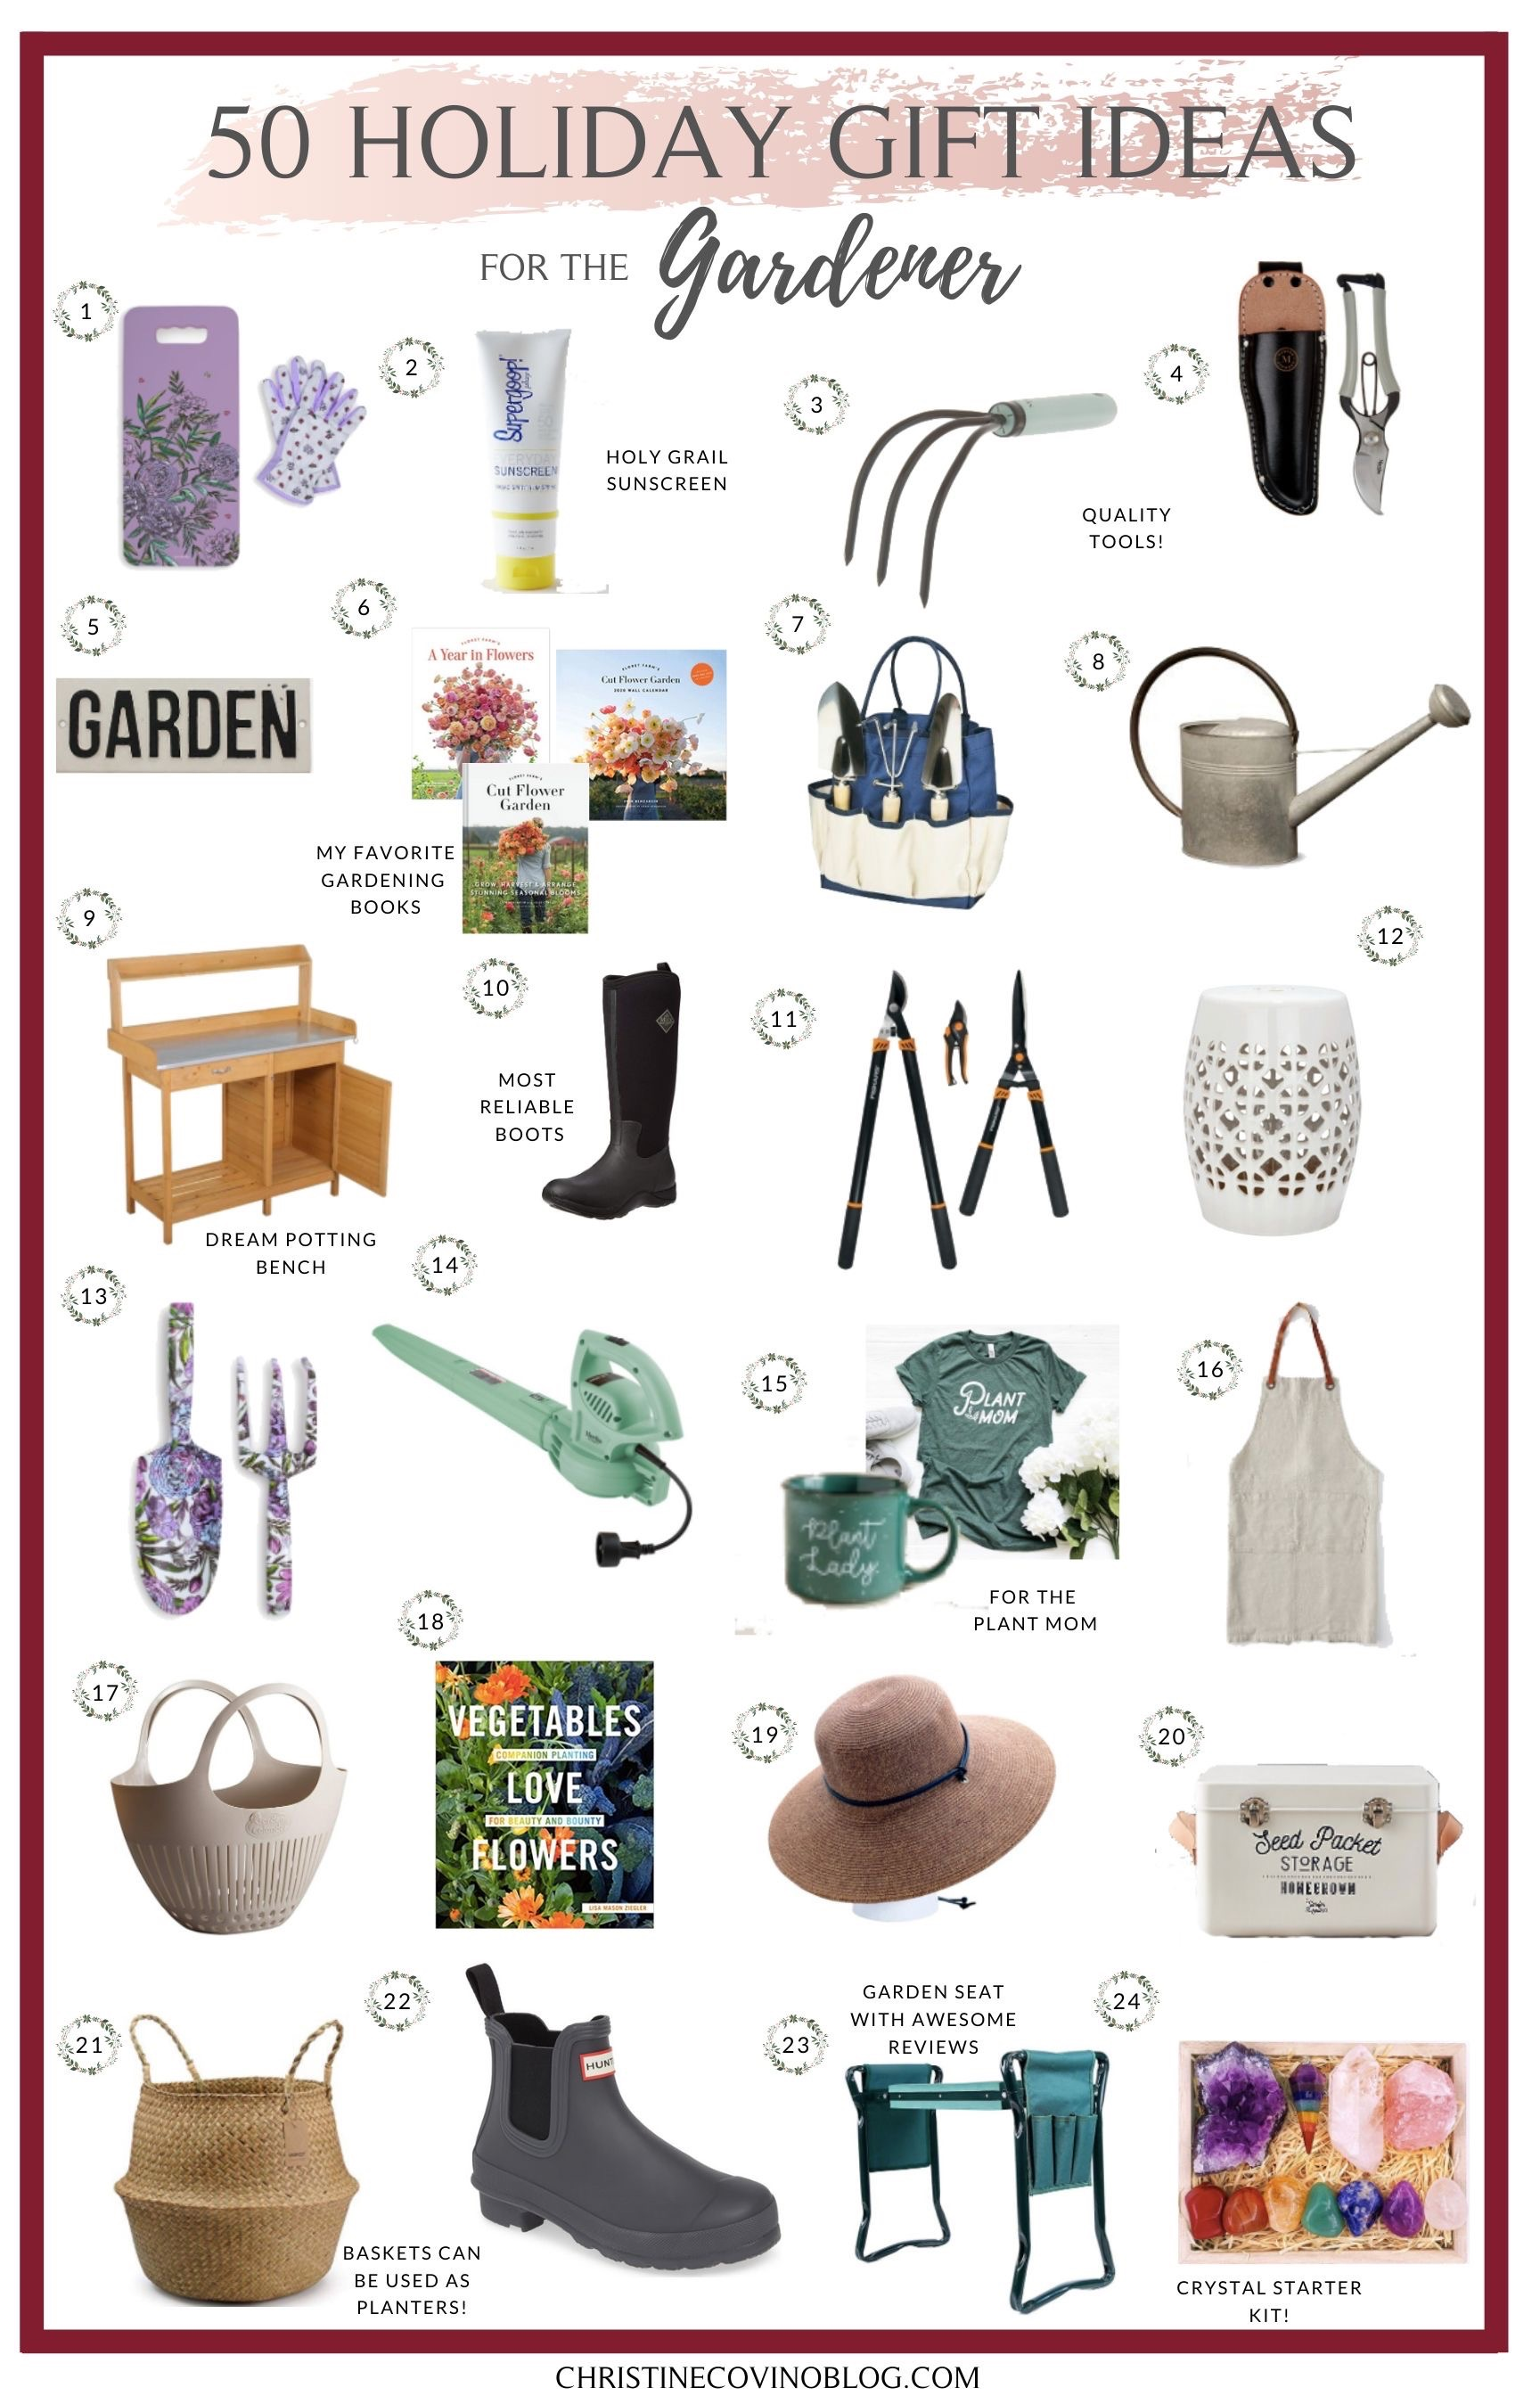 Sharing 50 of my favorite holiday gift ideas for the gardener. These holiday ideas are perfect for everyone who loves to be outside gardening this year.